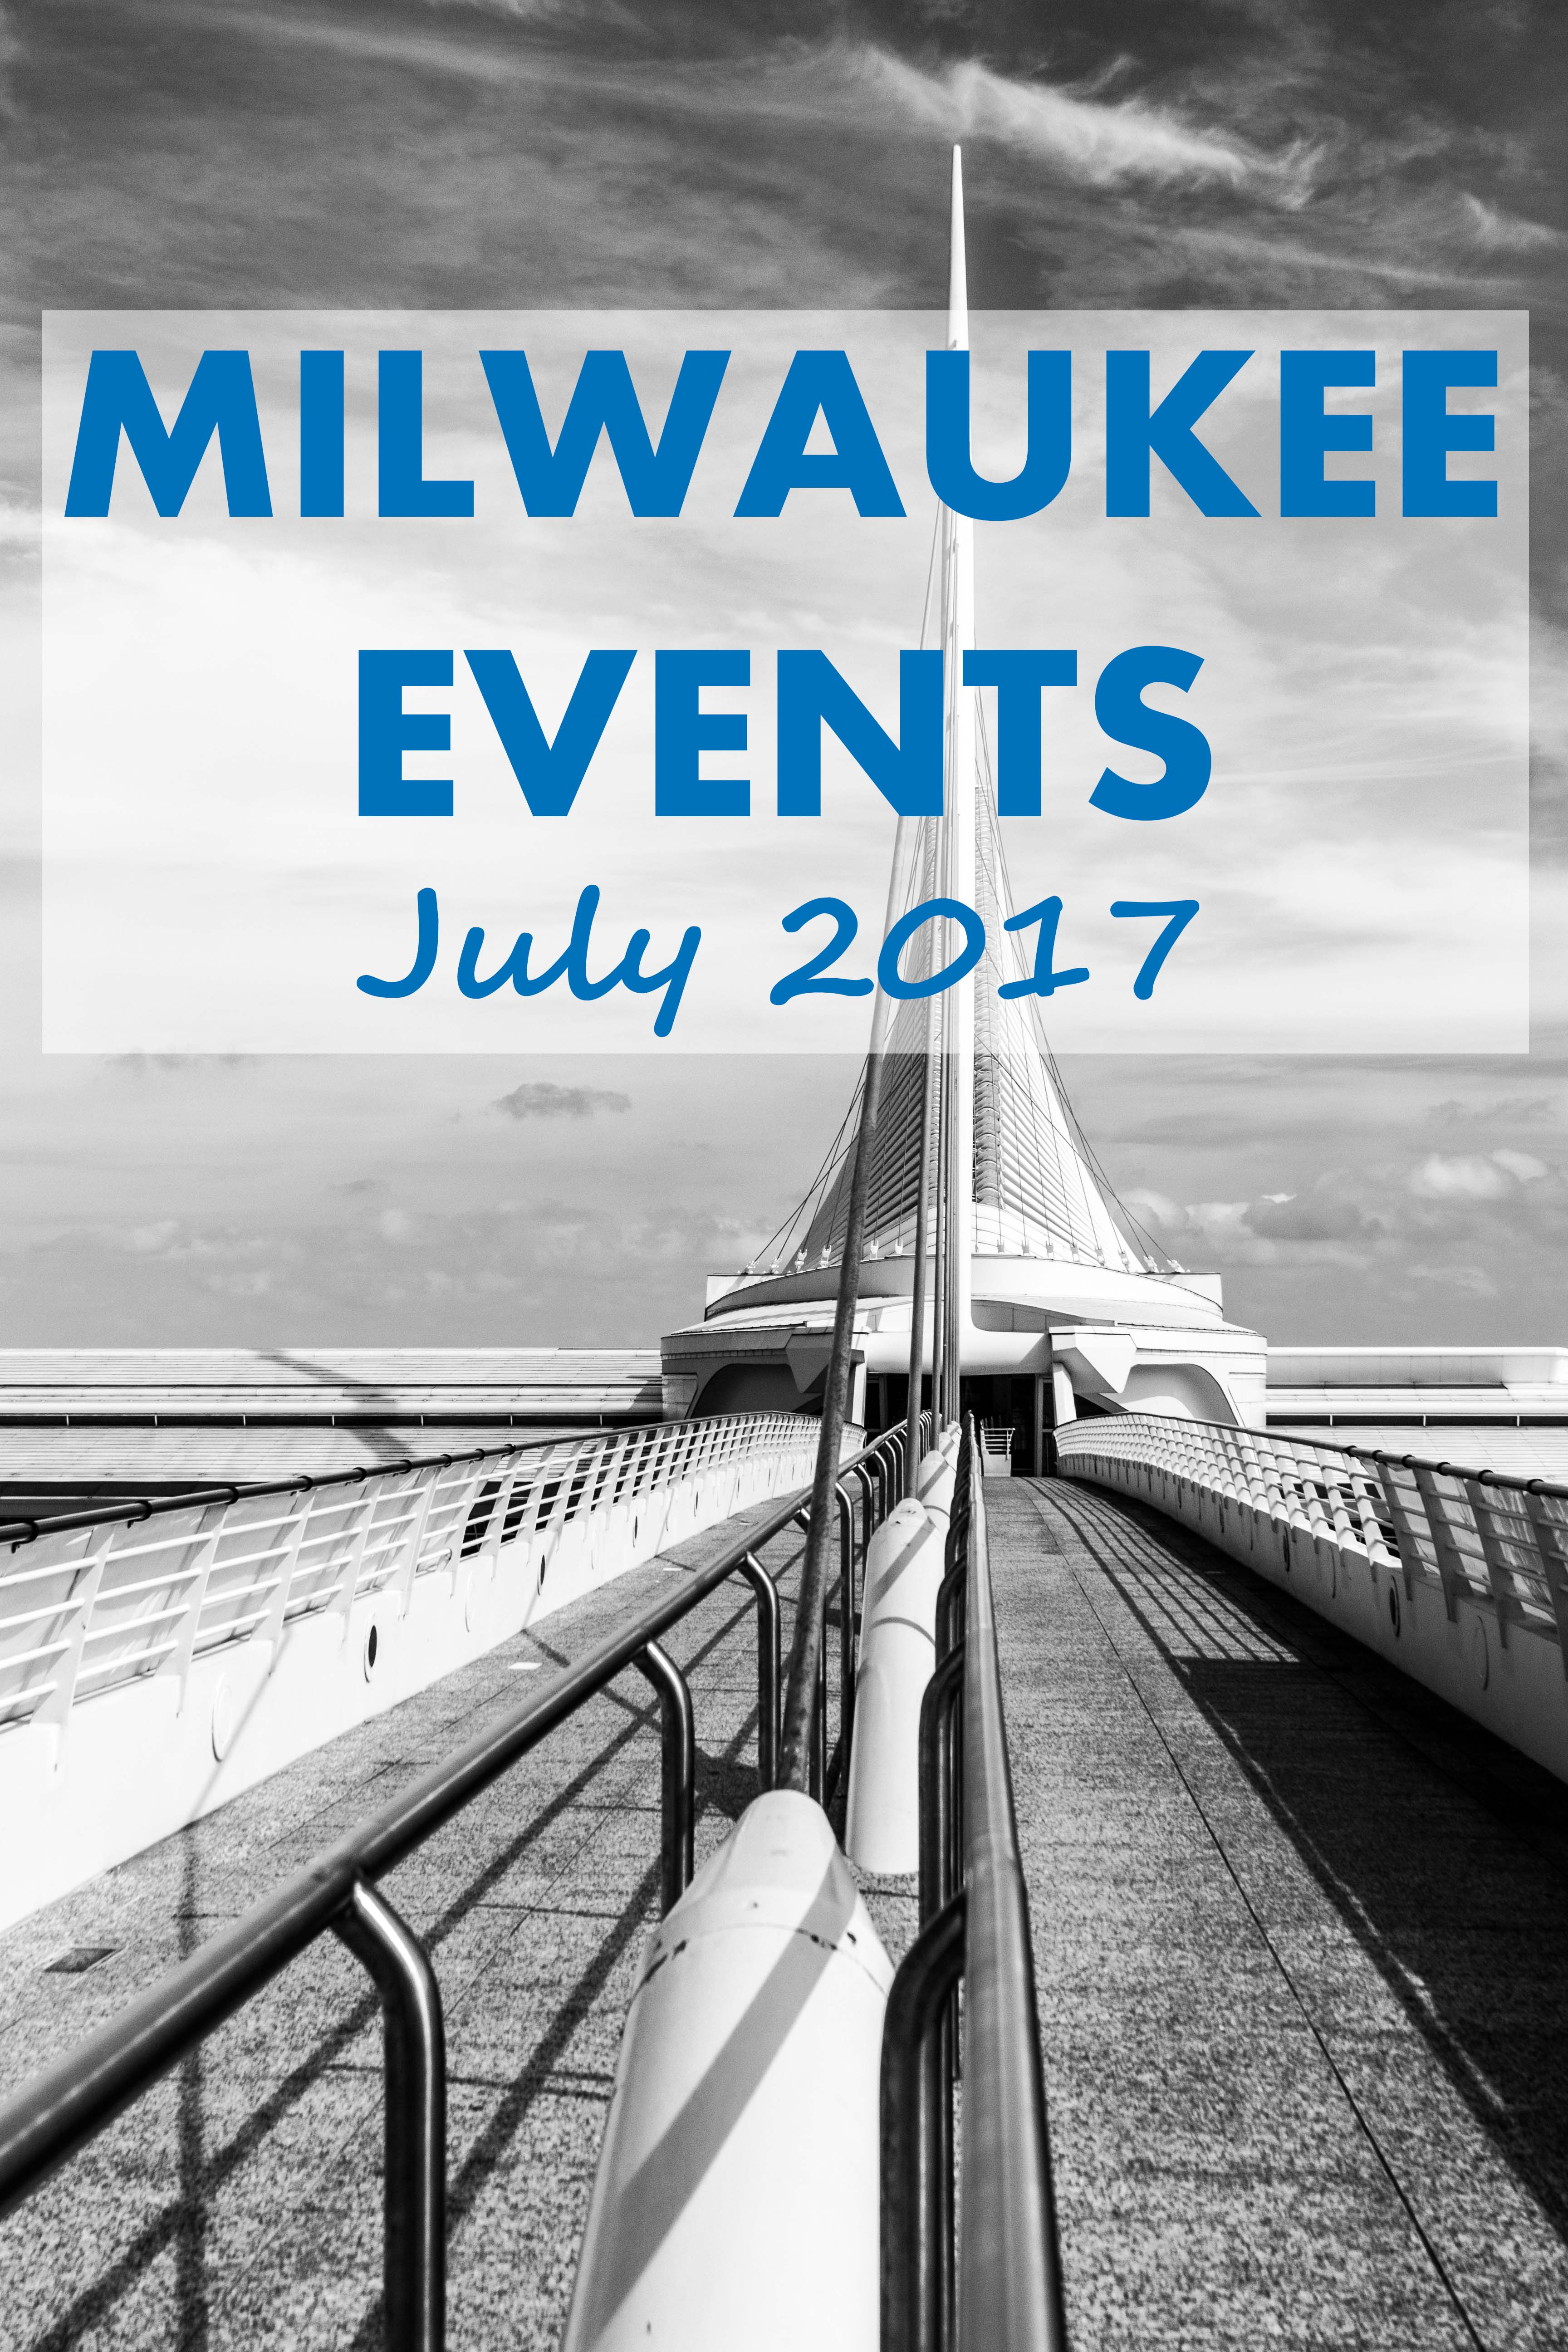 Milwaukee Events - July 2017 | http://www.roseclearfield.com